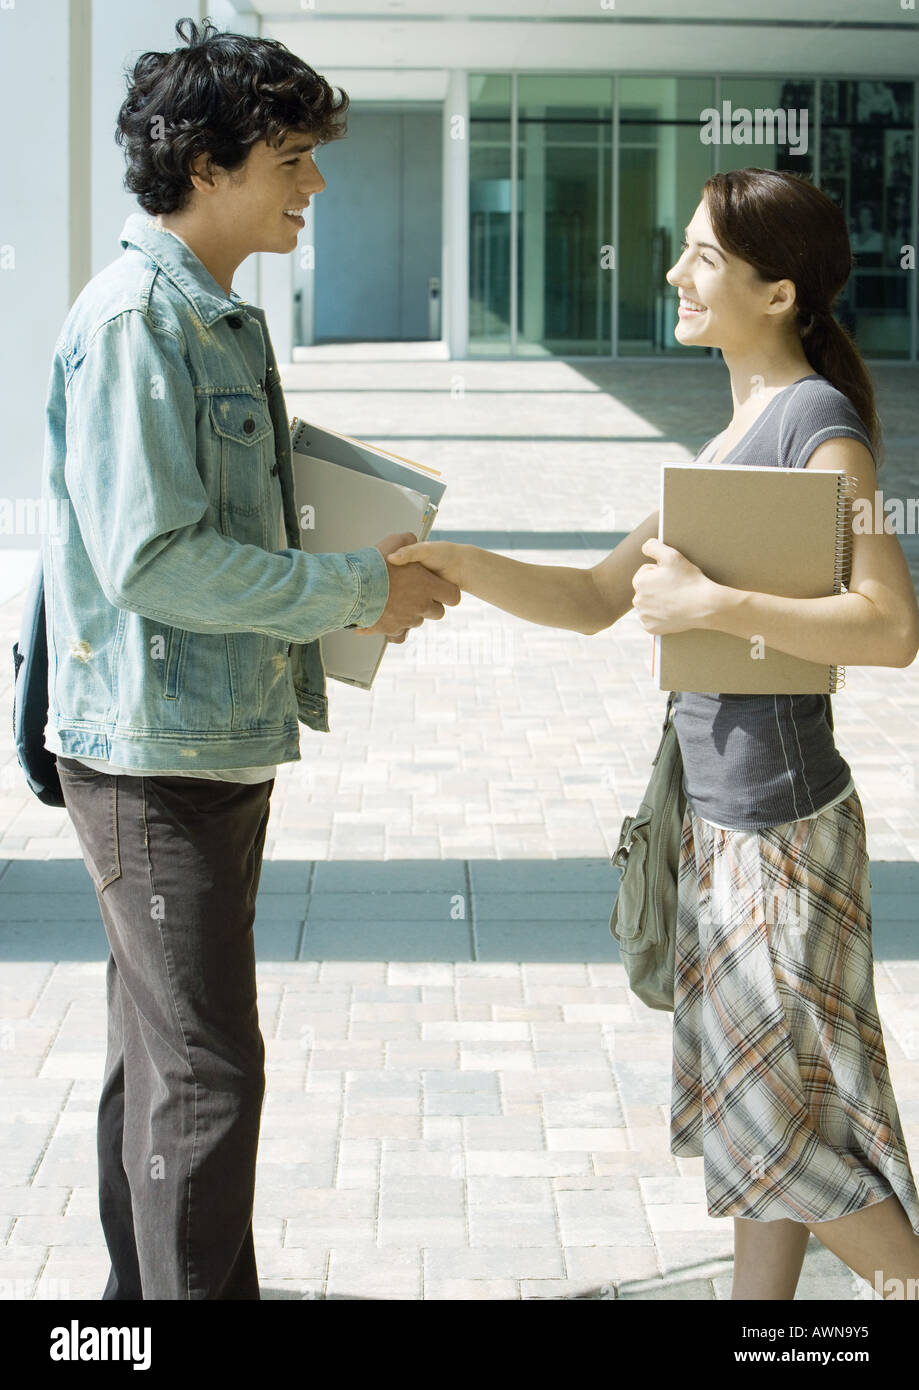 Students shaking hands on campus - Stock Image